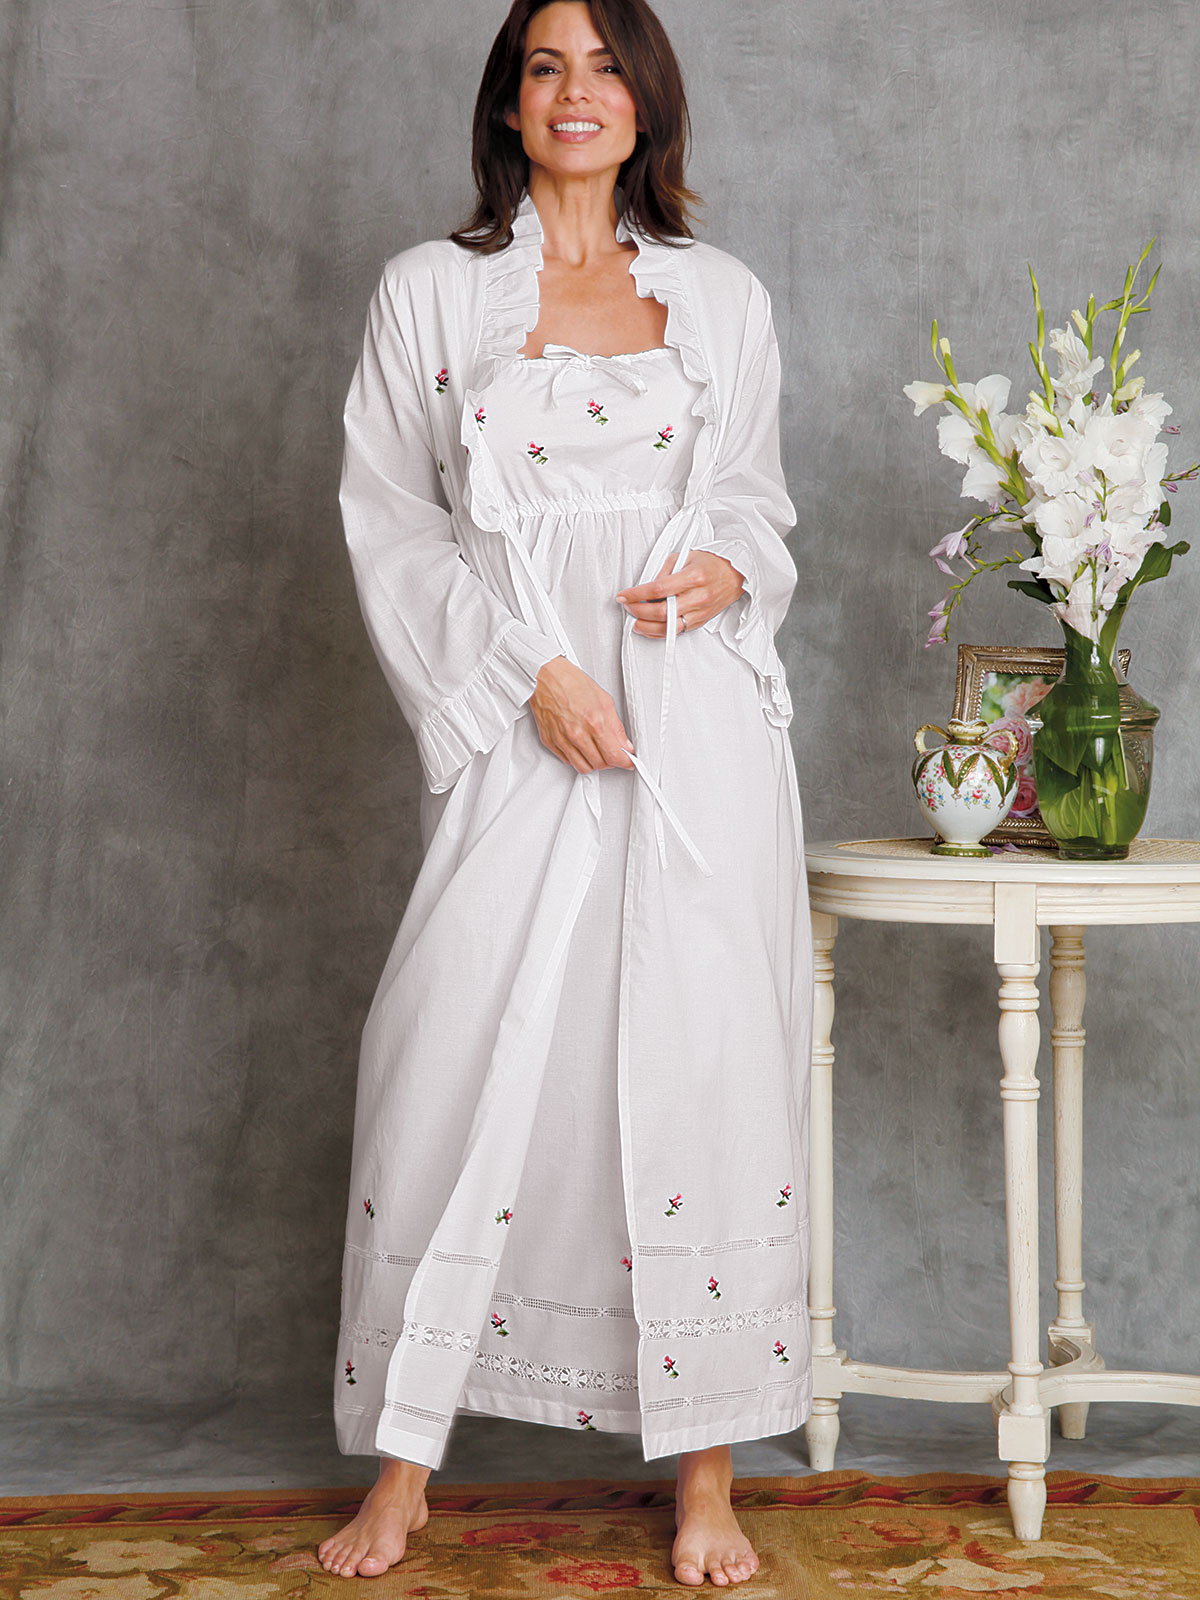 Rosebuds Nightwear Luxury Nightgowns Luxury Nightwear